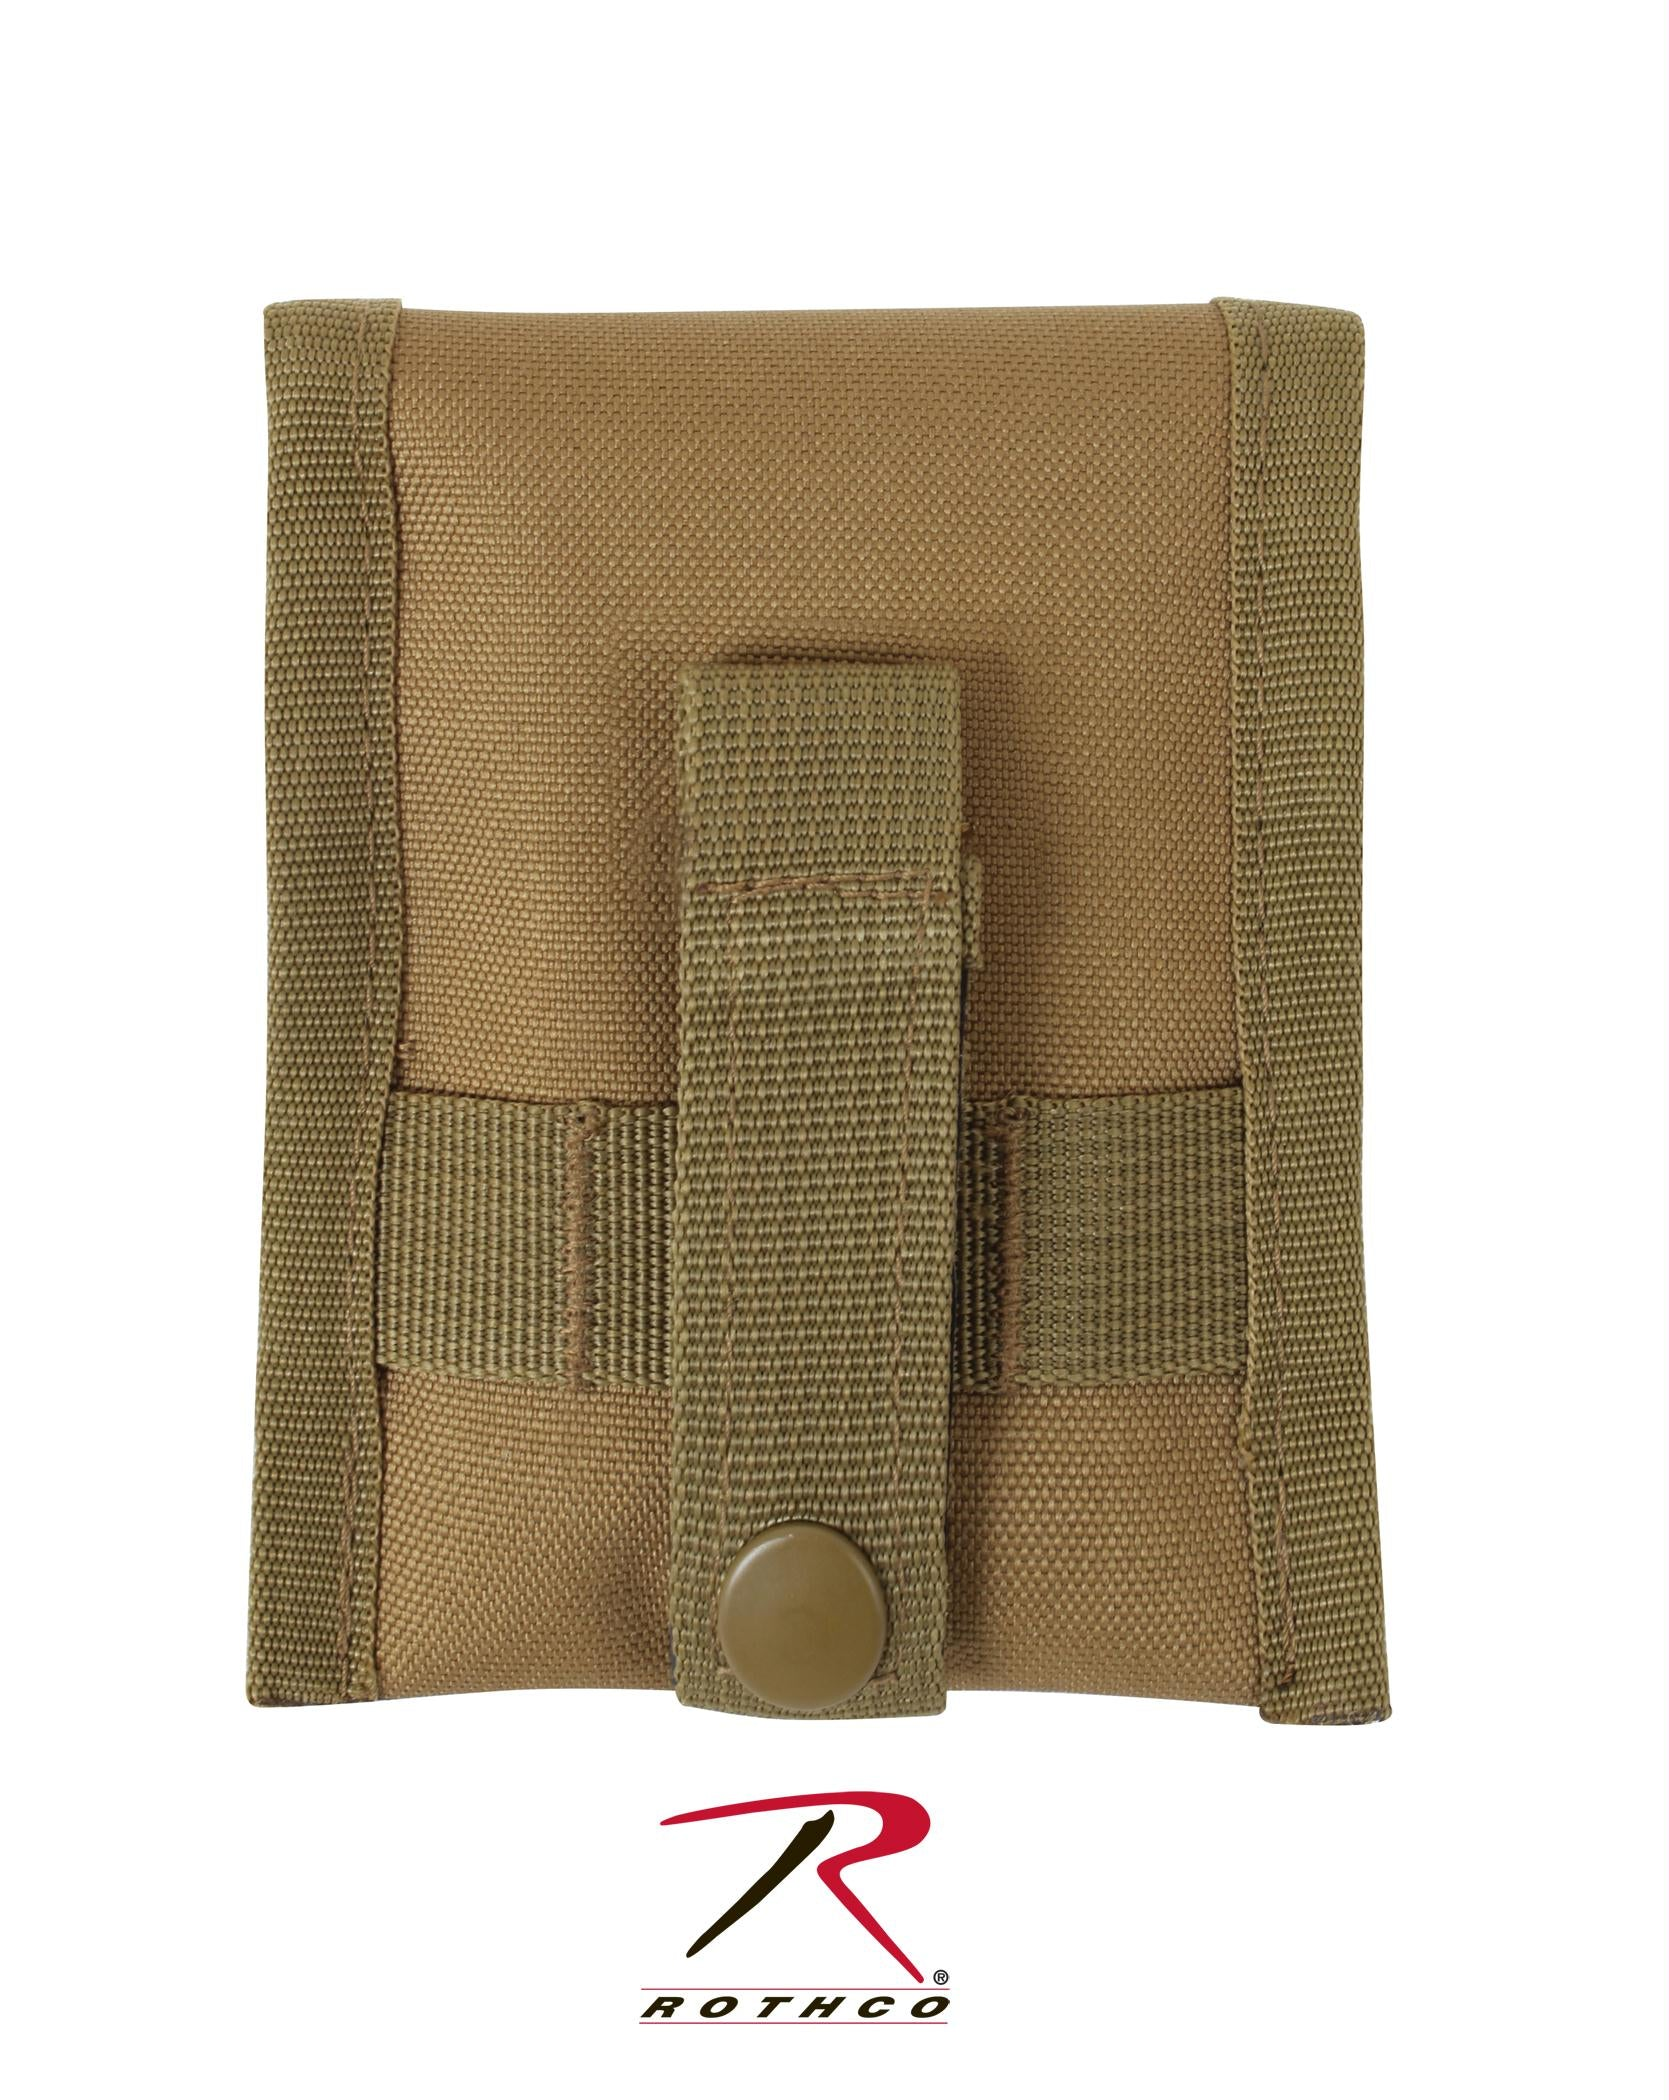 Rothco MOLLE Compatible Compass Pouch - Coyote Brown